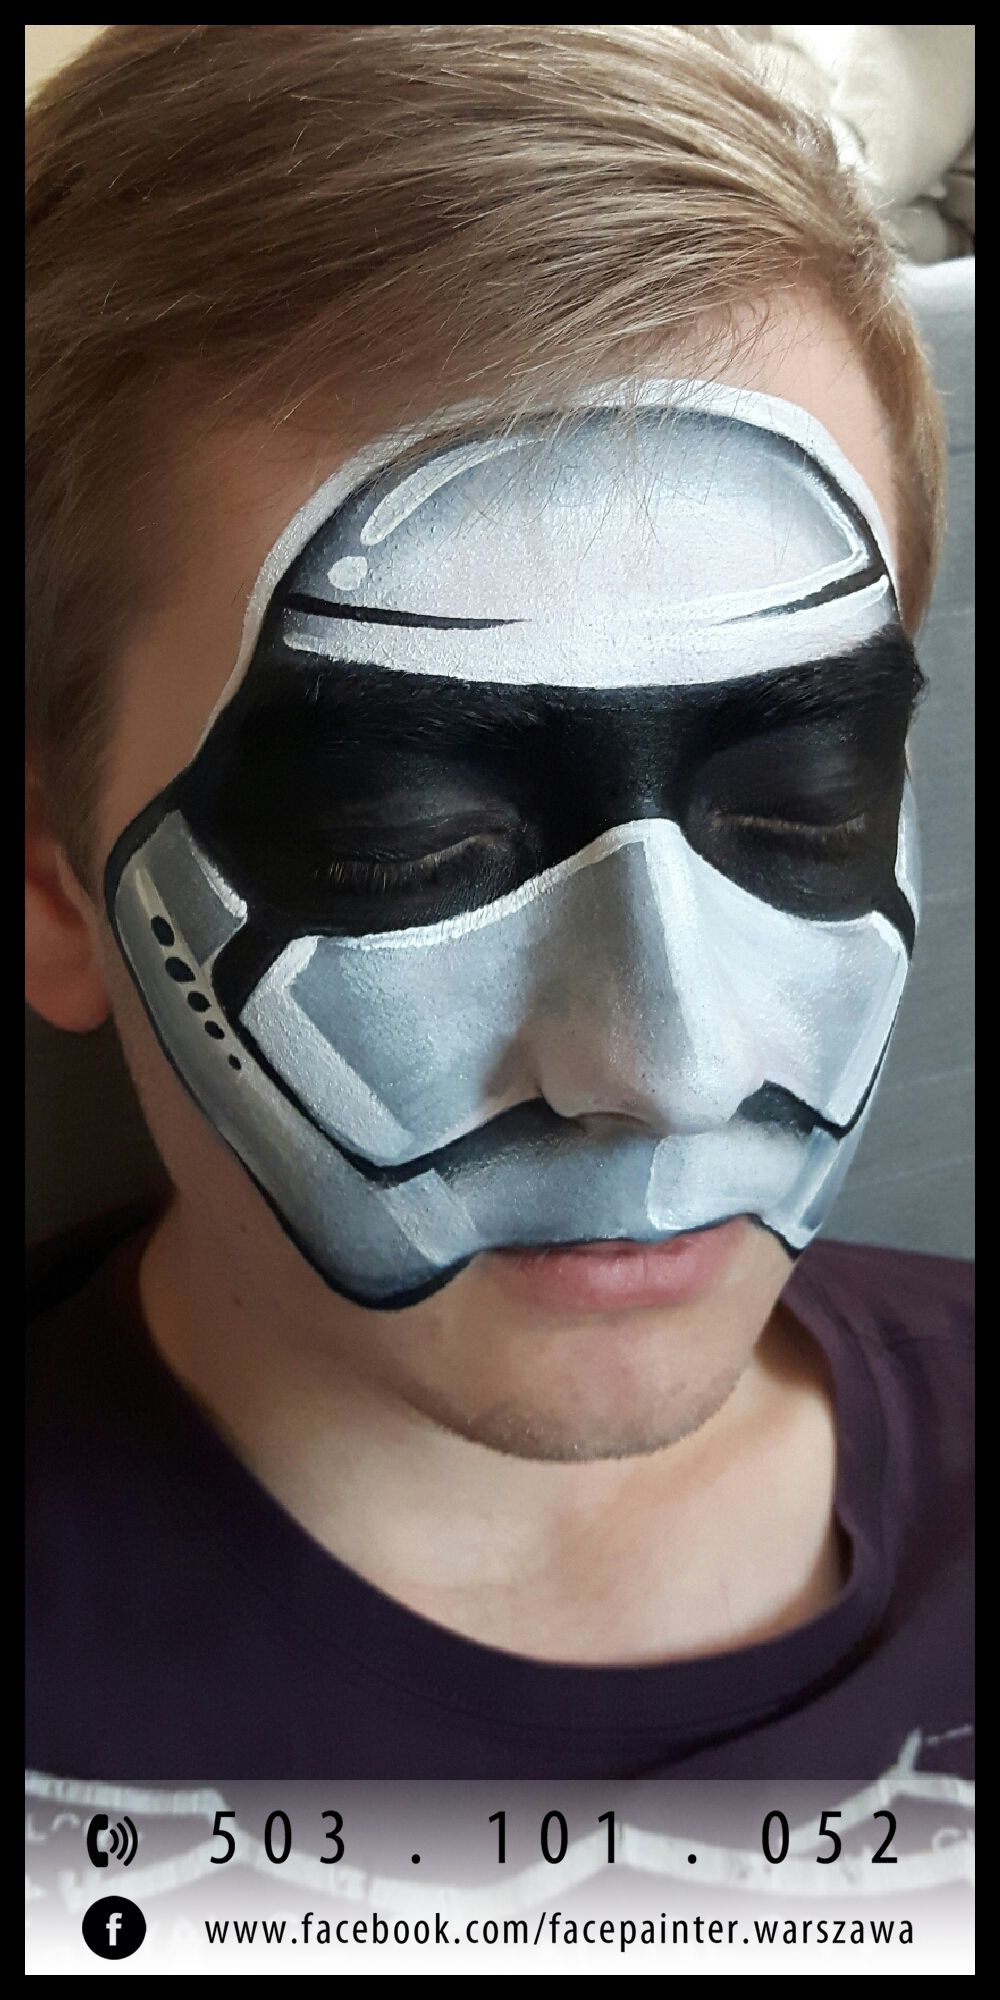 stormtrooper star wars face paint face painting pinterest jongens jongen en paints. Black Bedroom Furniture Sets. Home Design Ideas